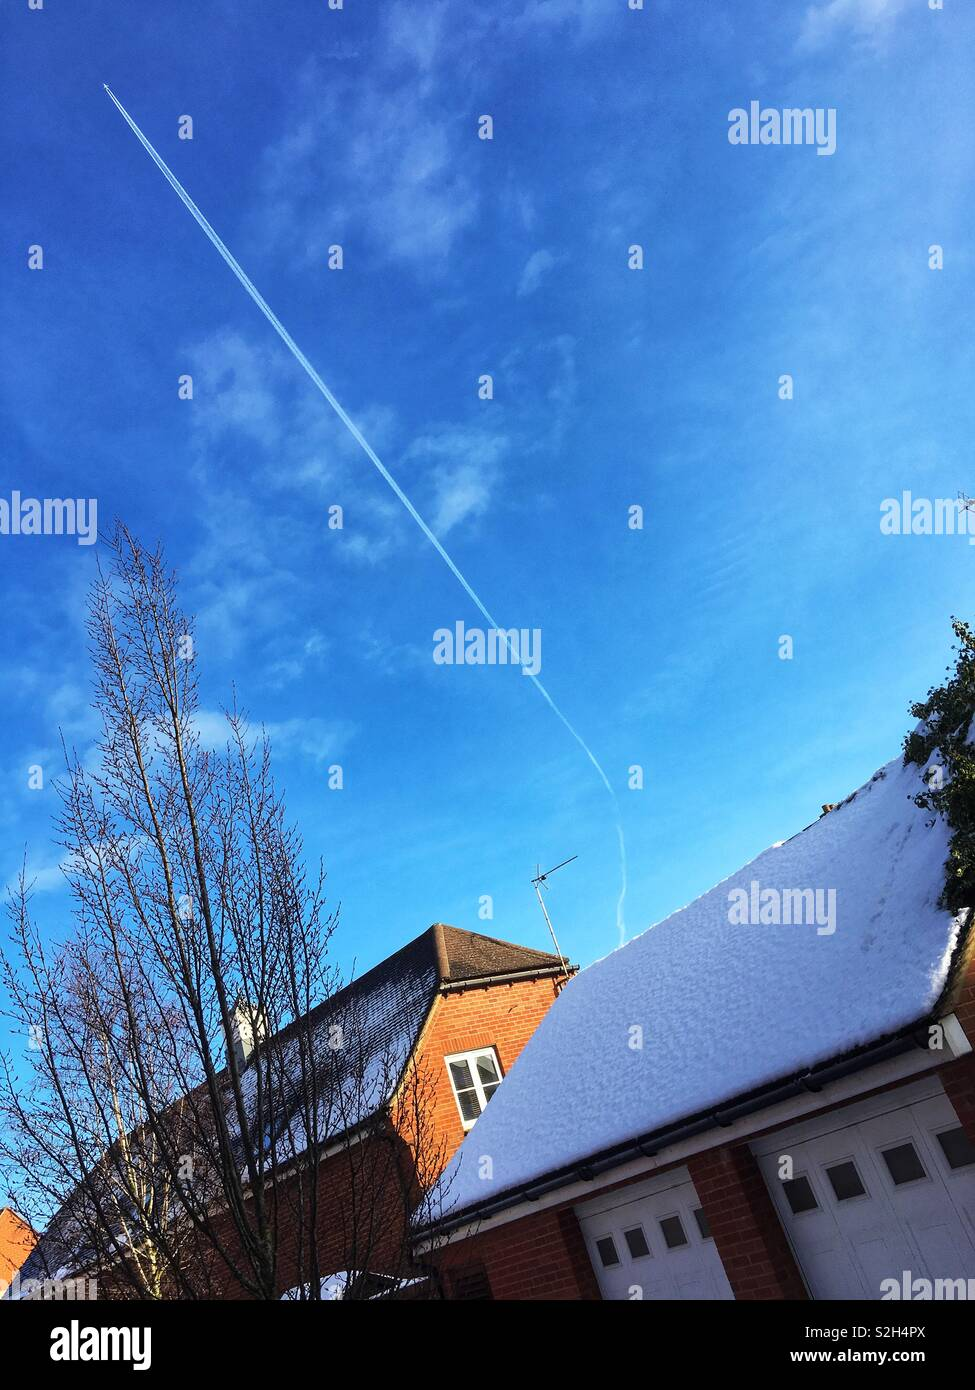 Angled shot of roofs with snow, featuring a high plane with diagonal vapour train in a blue sky. Copy space. - Stock Image